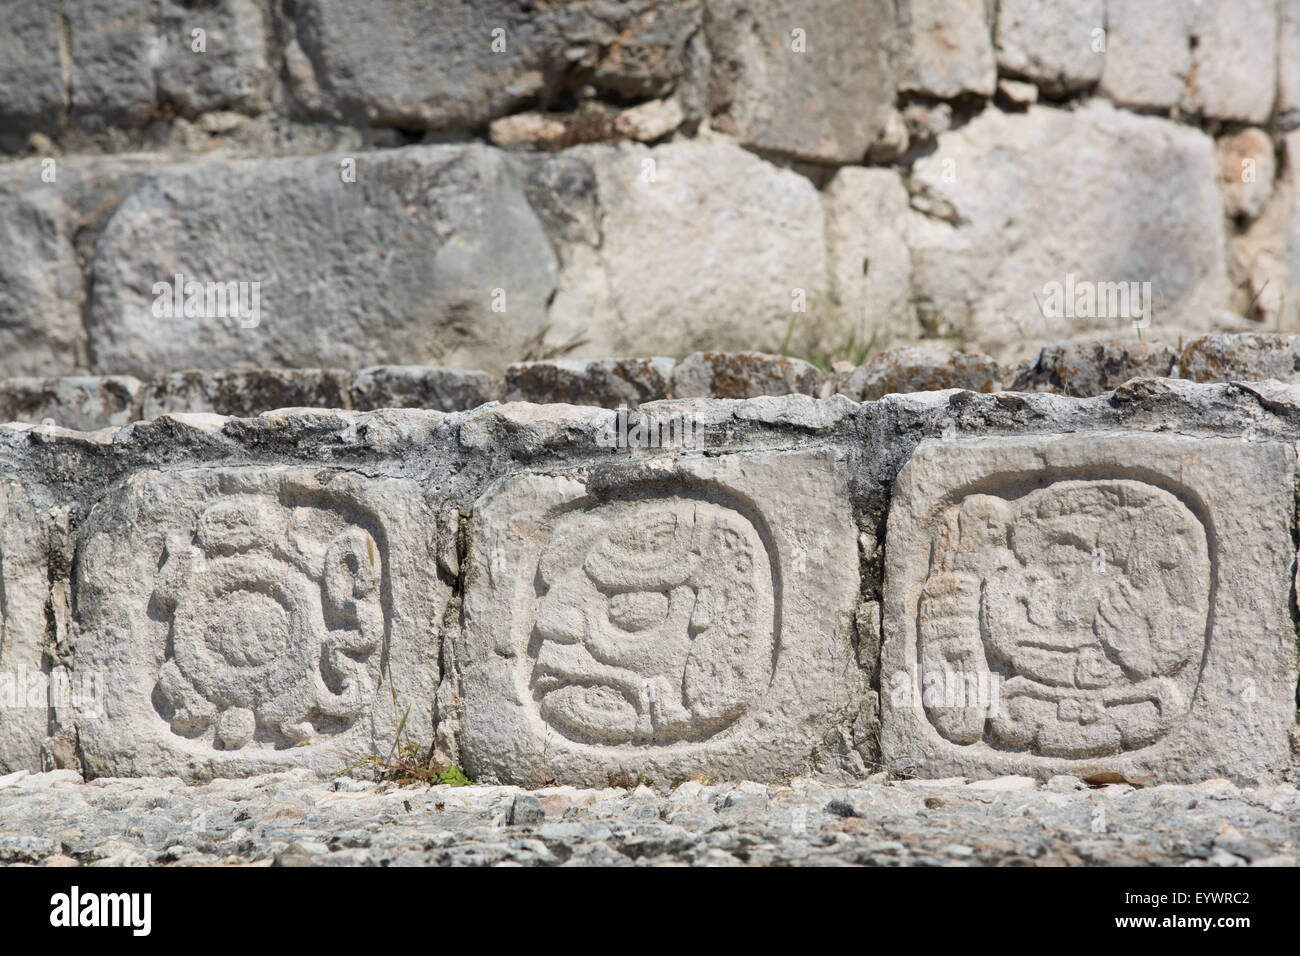 Stone carved Hieroglyphs, Structure of Five Floors (Pisos), Edzna, Mayan archaeological site, Campeche, Mexico, - Stock Image